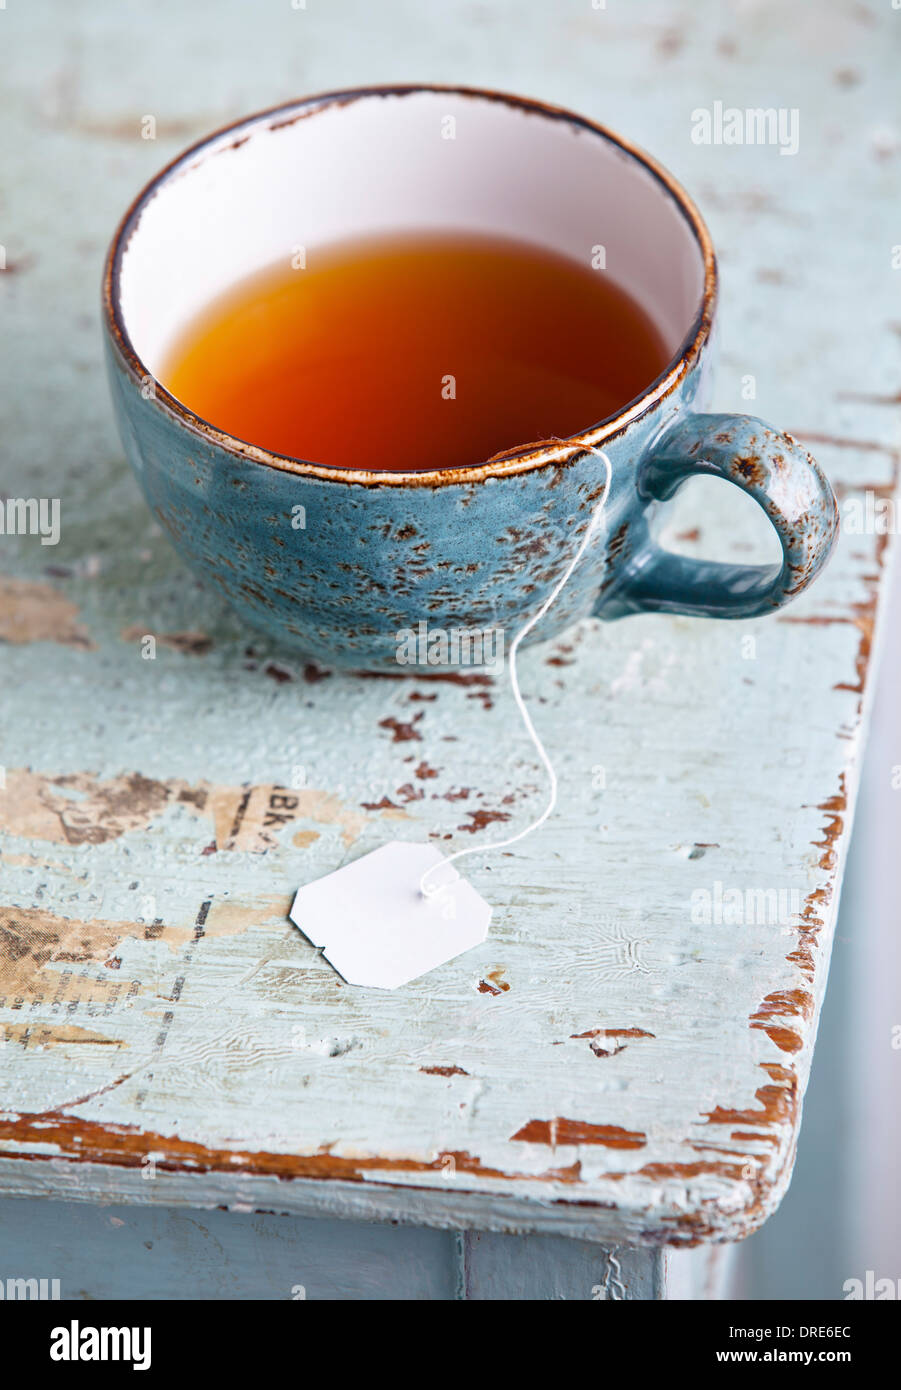 Cup of tea with teabag on blue textural background - Stock Image